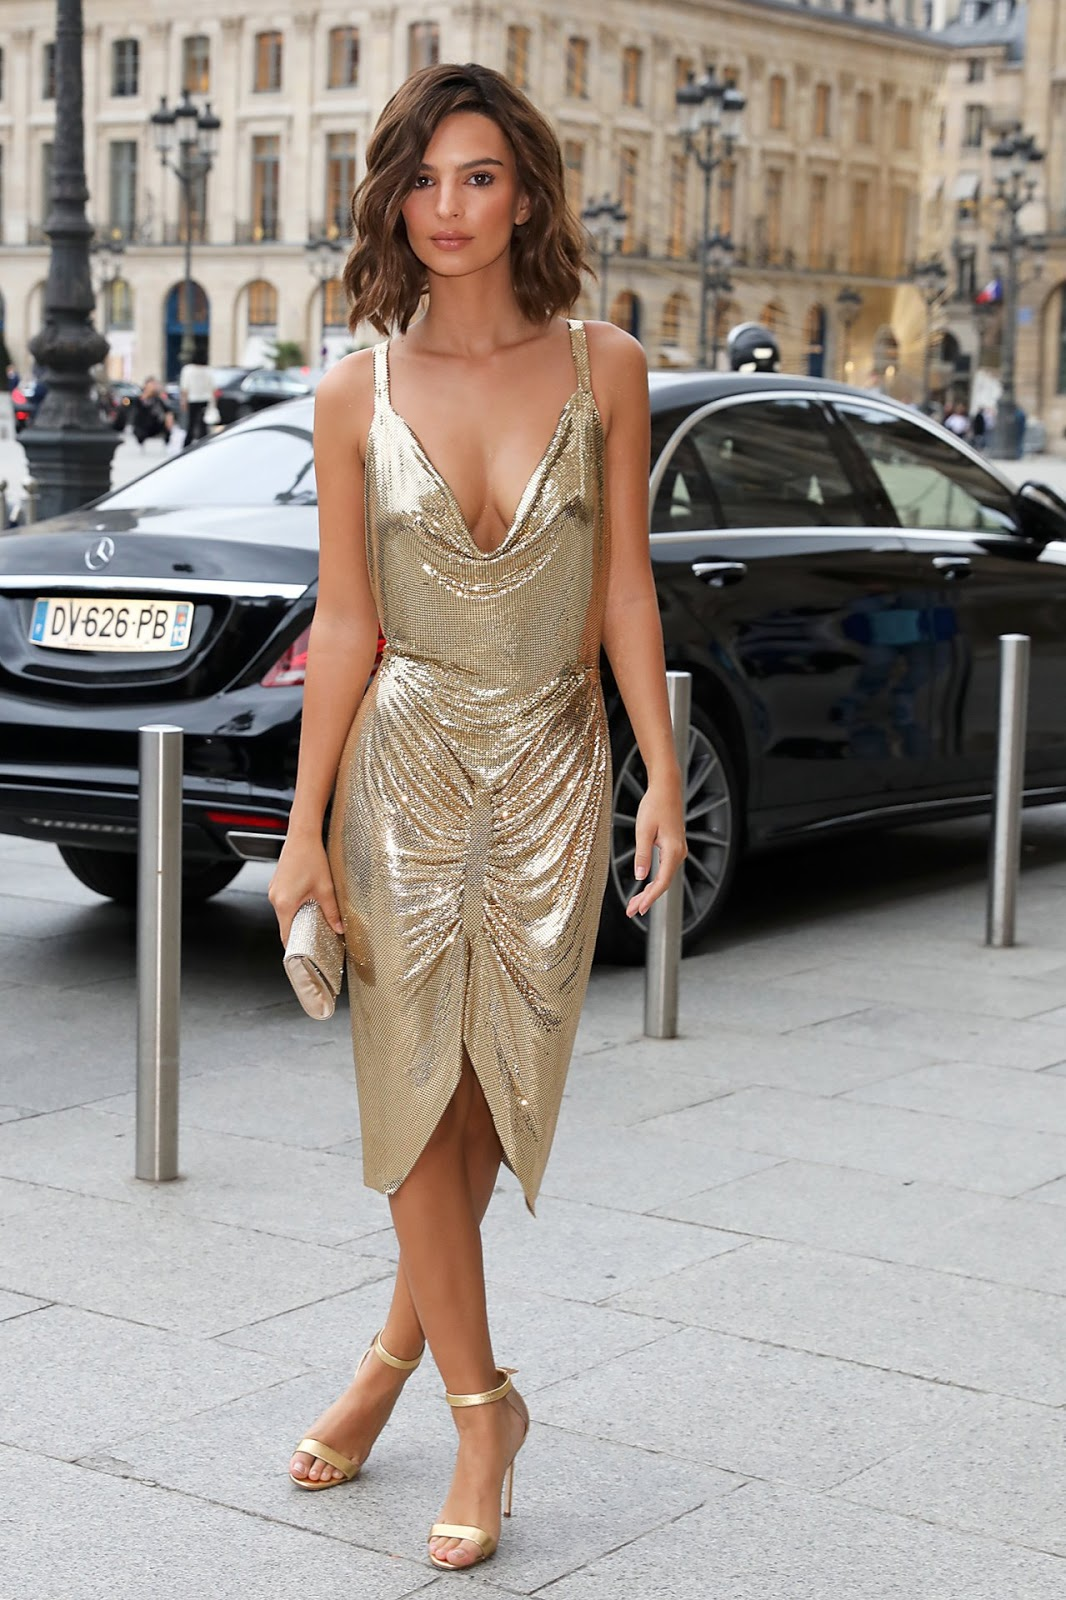 Emily Ratajkowski wears slinky dress out and about in Paris